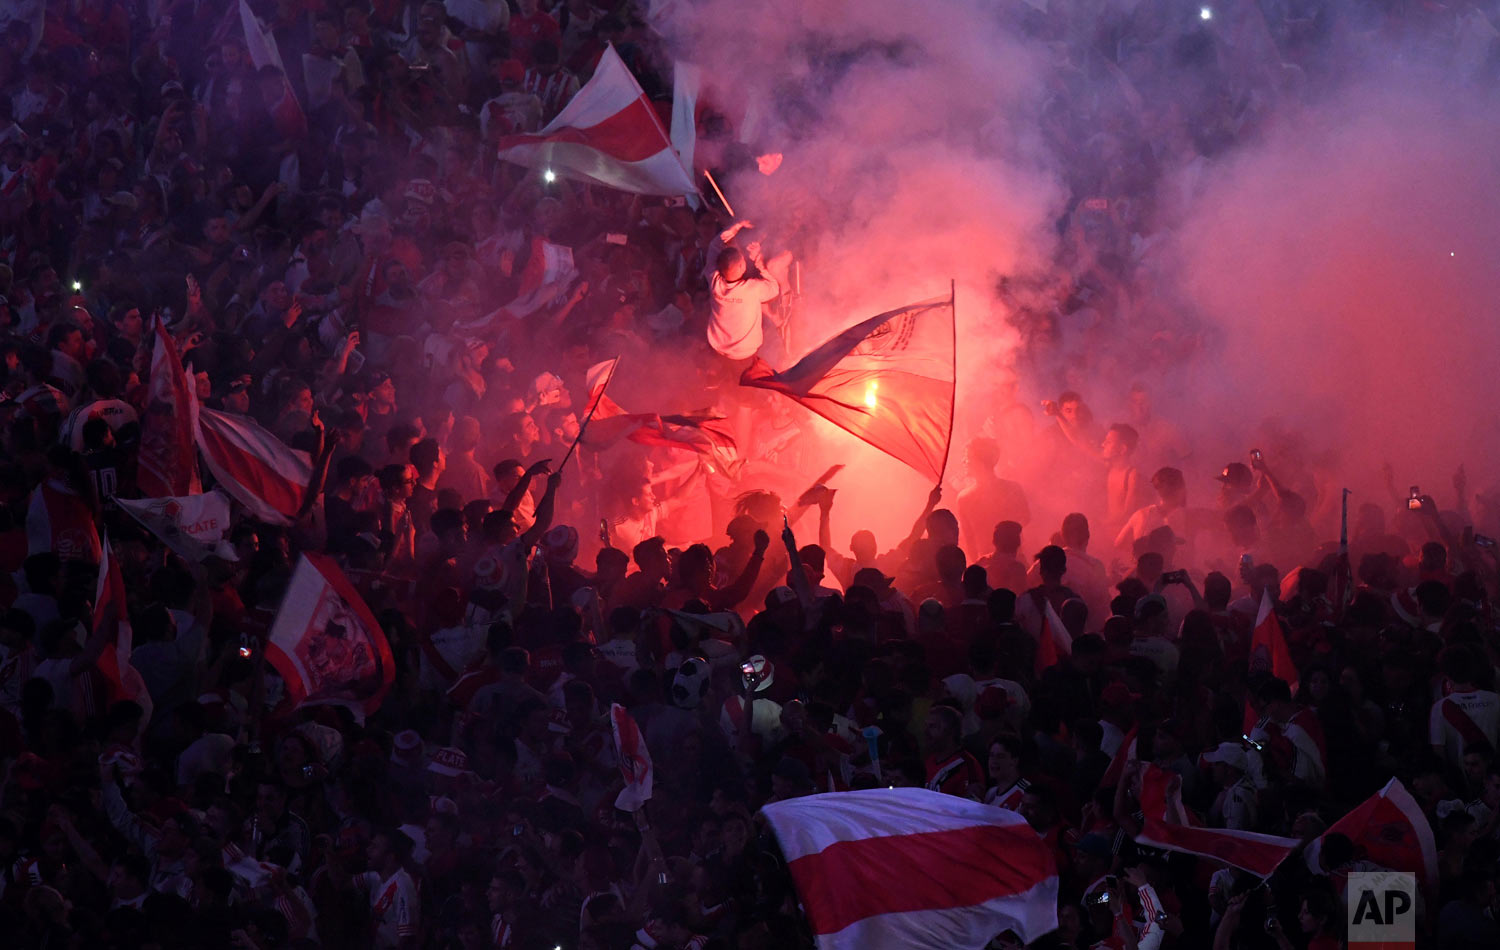 In this Dec. 9, 2018 photo, River Plate soccer fans celebrate their team's 3-1 victory over Boca Juniors and clenching the Copa Libertadores championship title, at the Obelisk in Buenos Aires, Argentina. (AP Photo/Gustavo Garello)